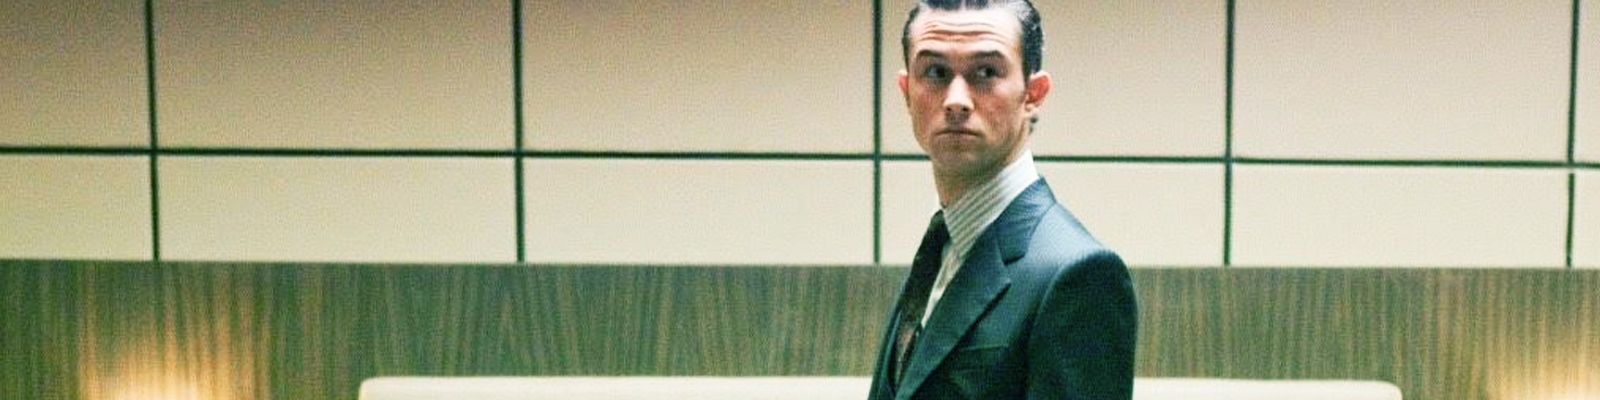 Nothing's Topped 'Inception's' Mind-Bending Hallway Scene In The Decade Since It Wan Unveiled